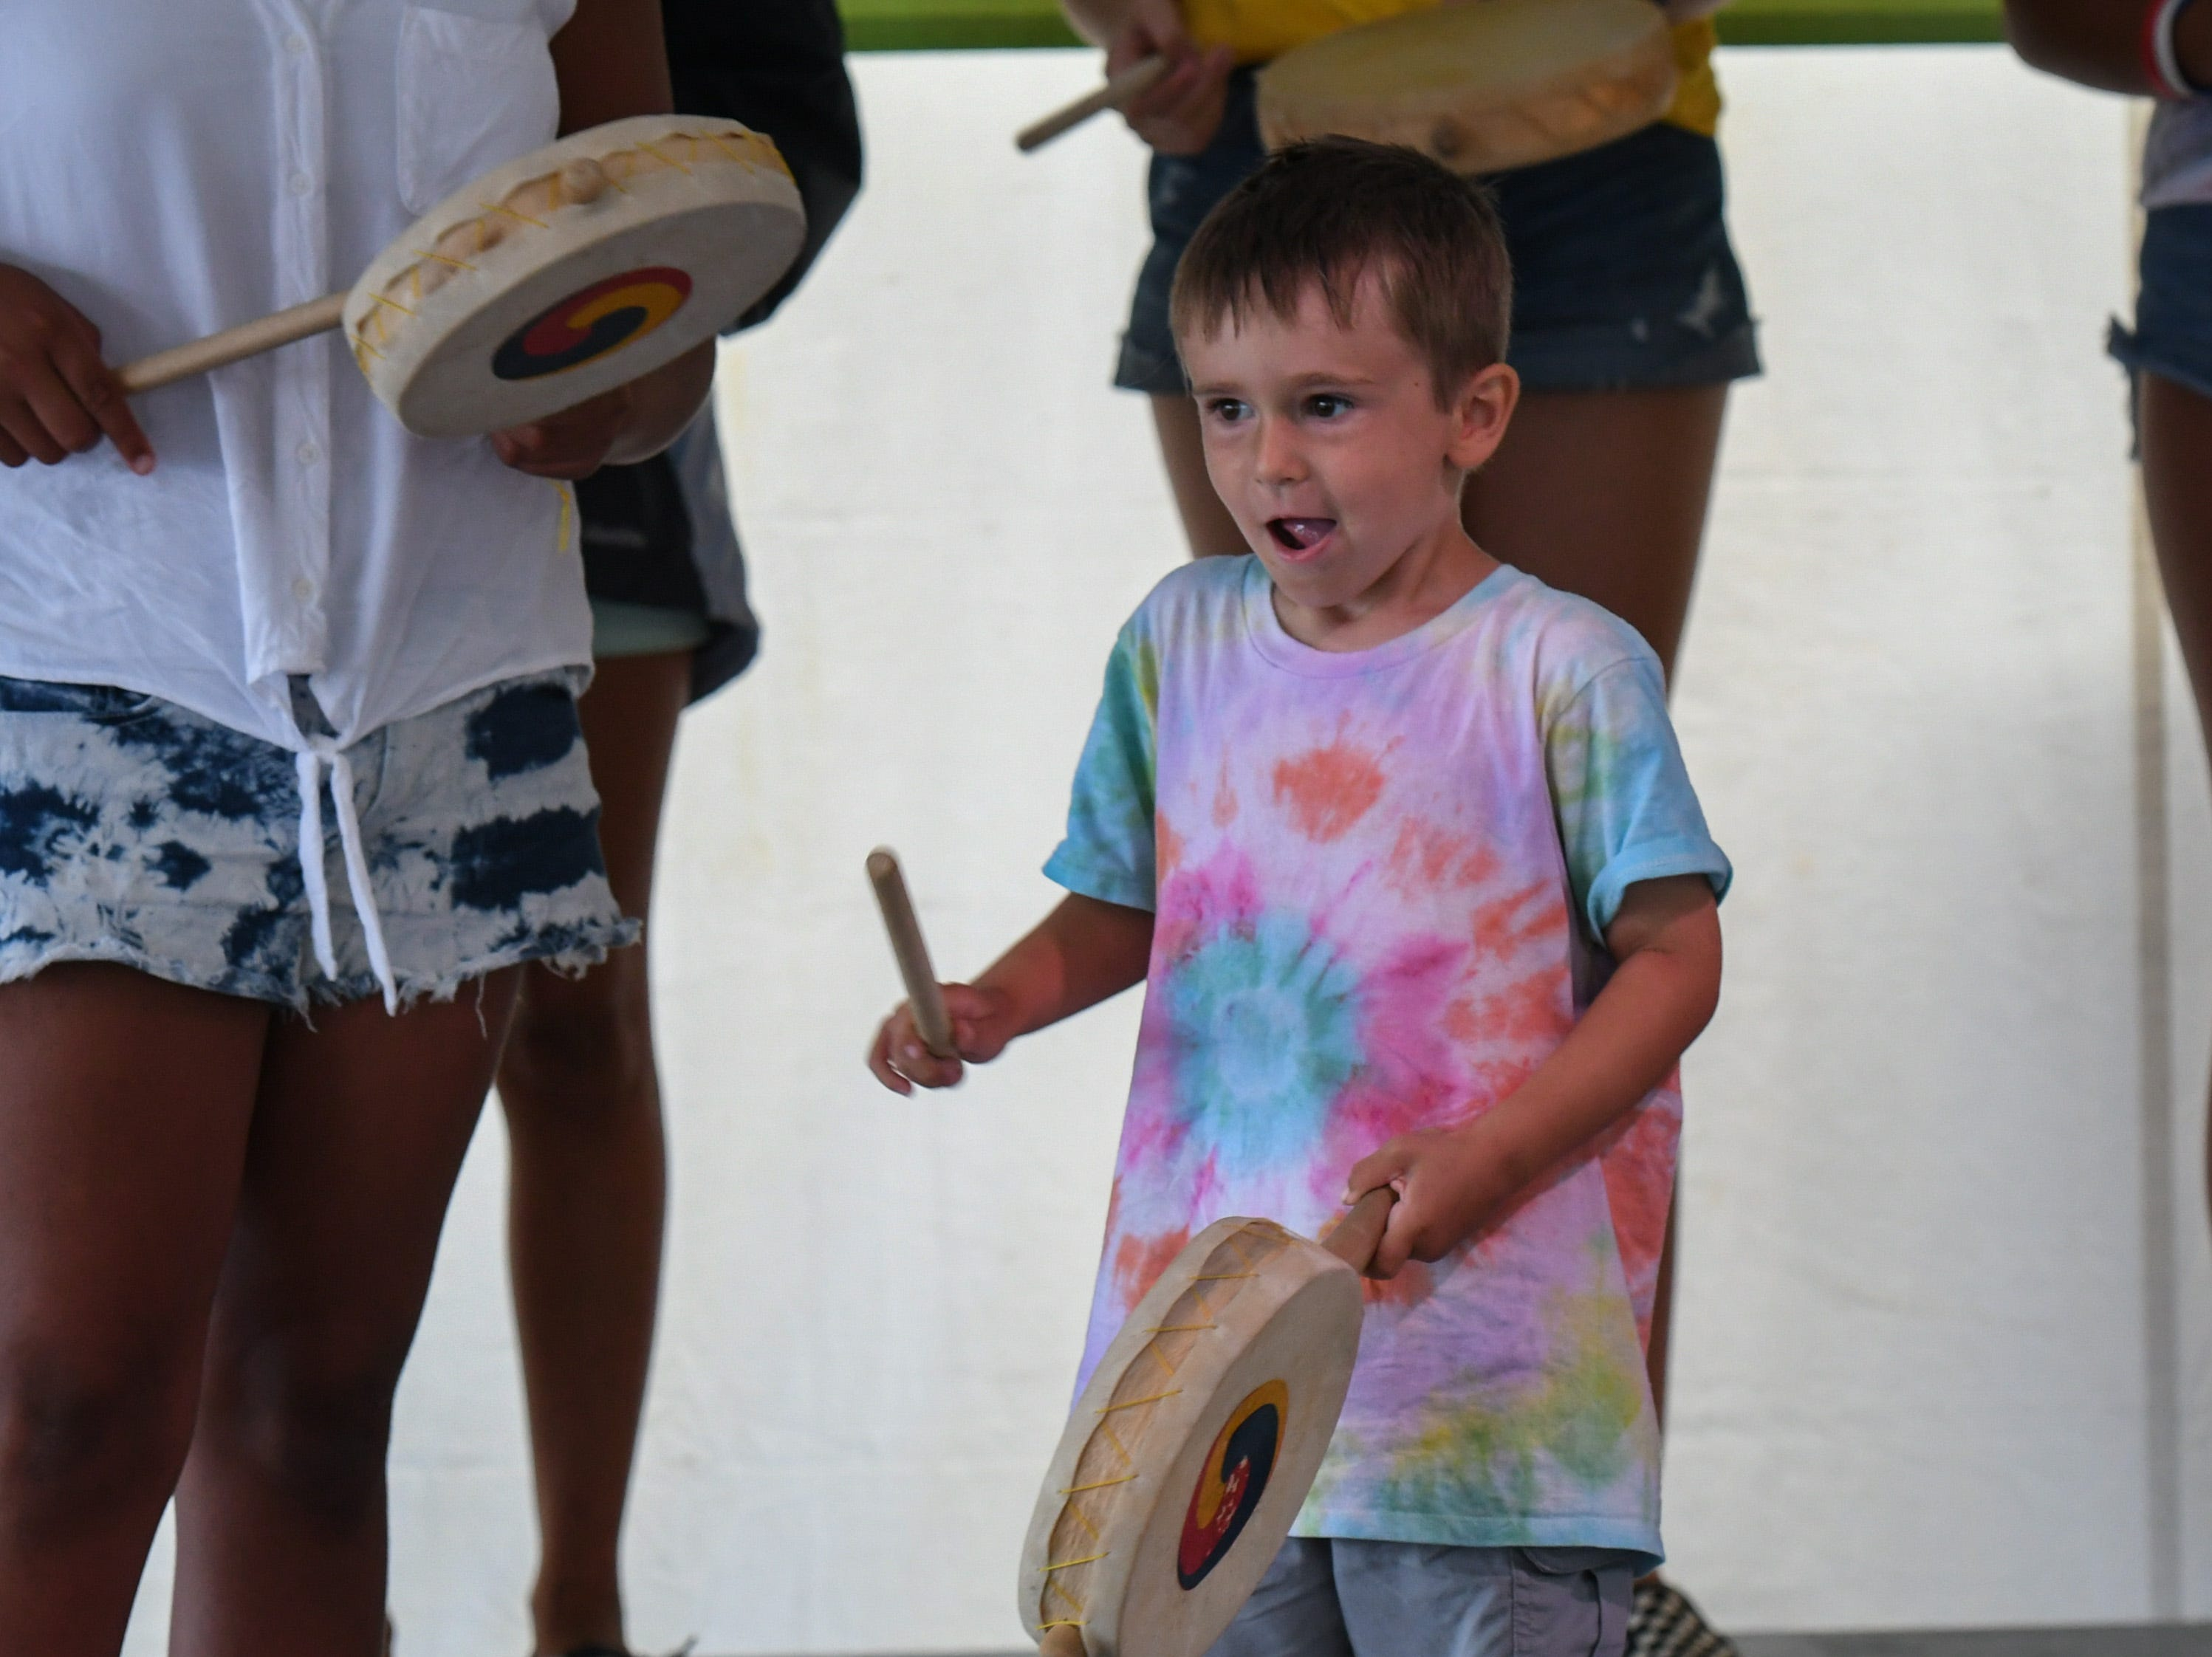 4-year-old Parker Beck learns a dance from the Sounds of Korea group at the National Folk Festival in Salisbury on Saturday, Sept. 8.